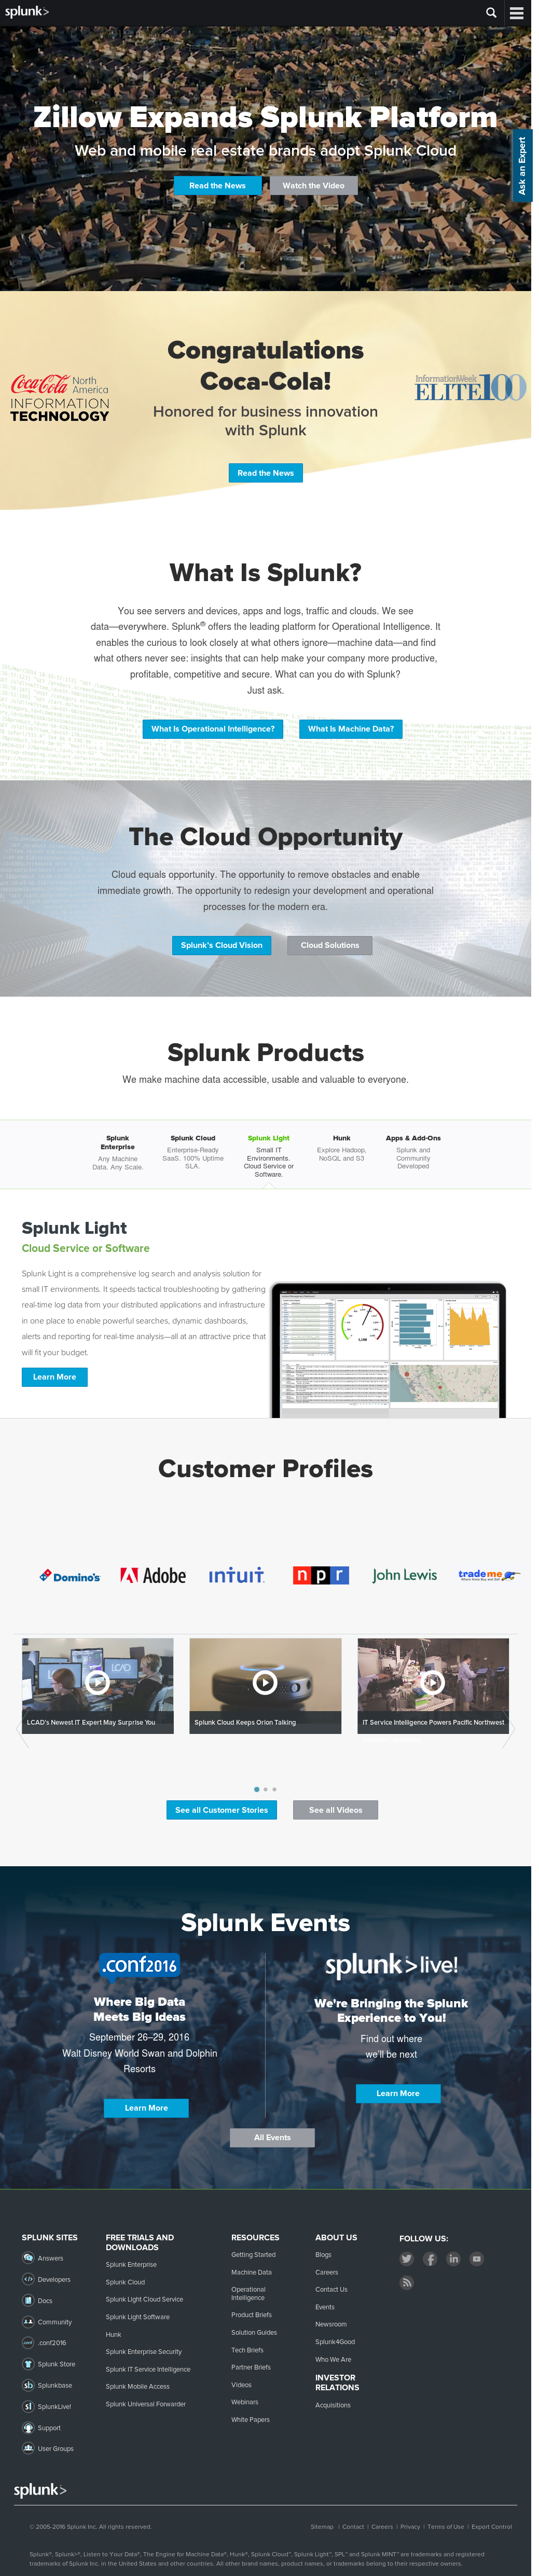 Splunk Competitors, Revenue and Employees - Owler Company Profile